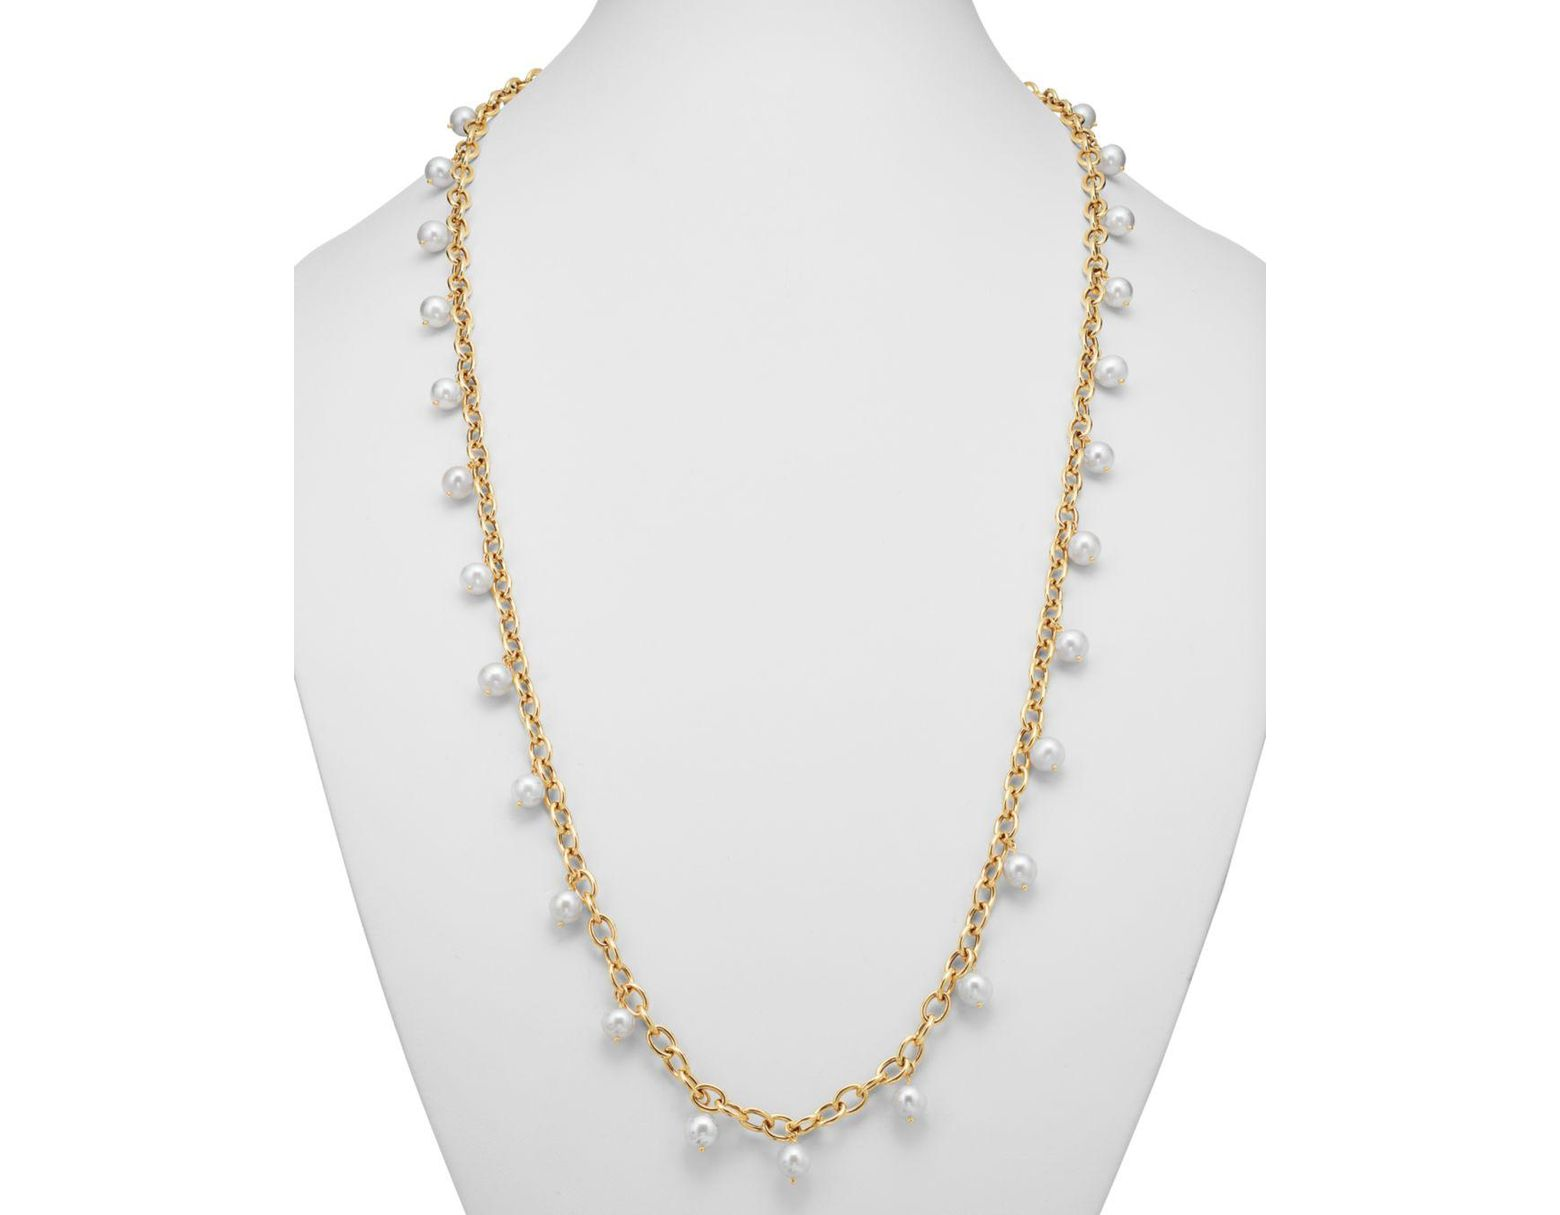 e8d6758443526 Women's Metallic Cultured Freshwater Pearl Tin Cup Necklace In 14k Yellow  Gold